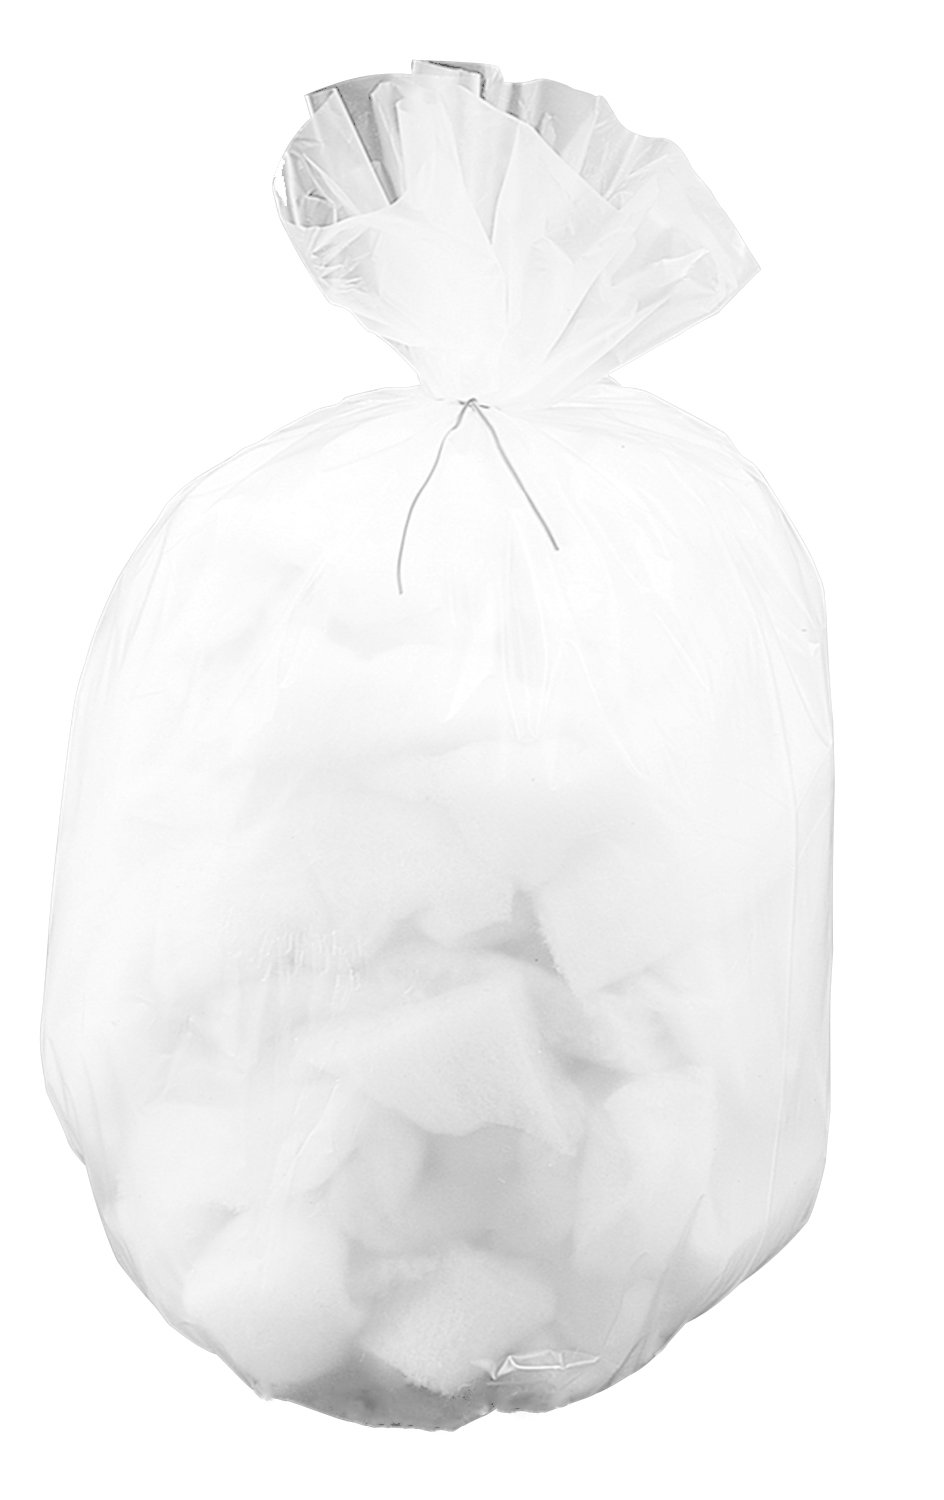 RPI Autoclave Bags, 19 x 24 Inches, 2 mil Thick, 100 per Package